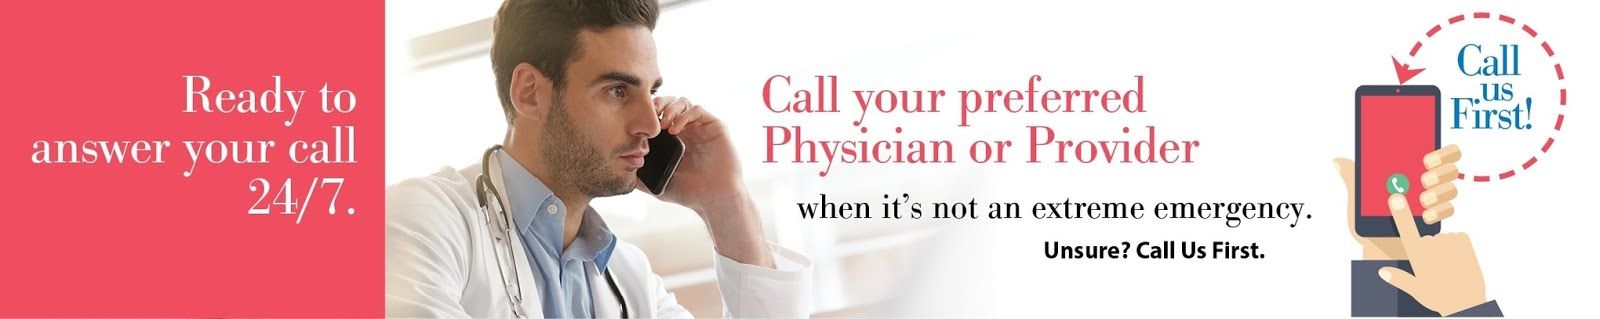 Medical Specialists in Pottstown, Phoenixville, Collegeville PA & Surrounding areas.